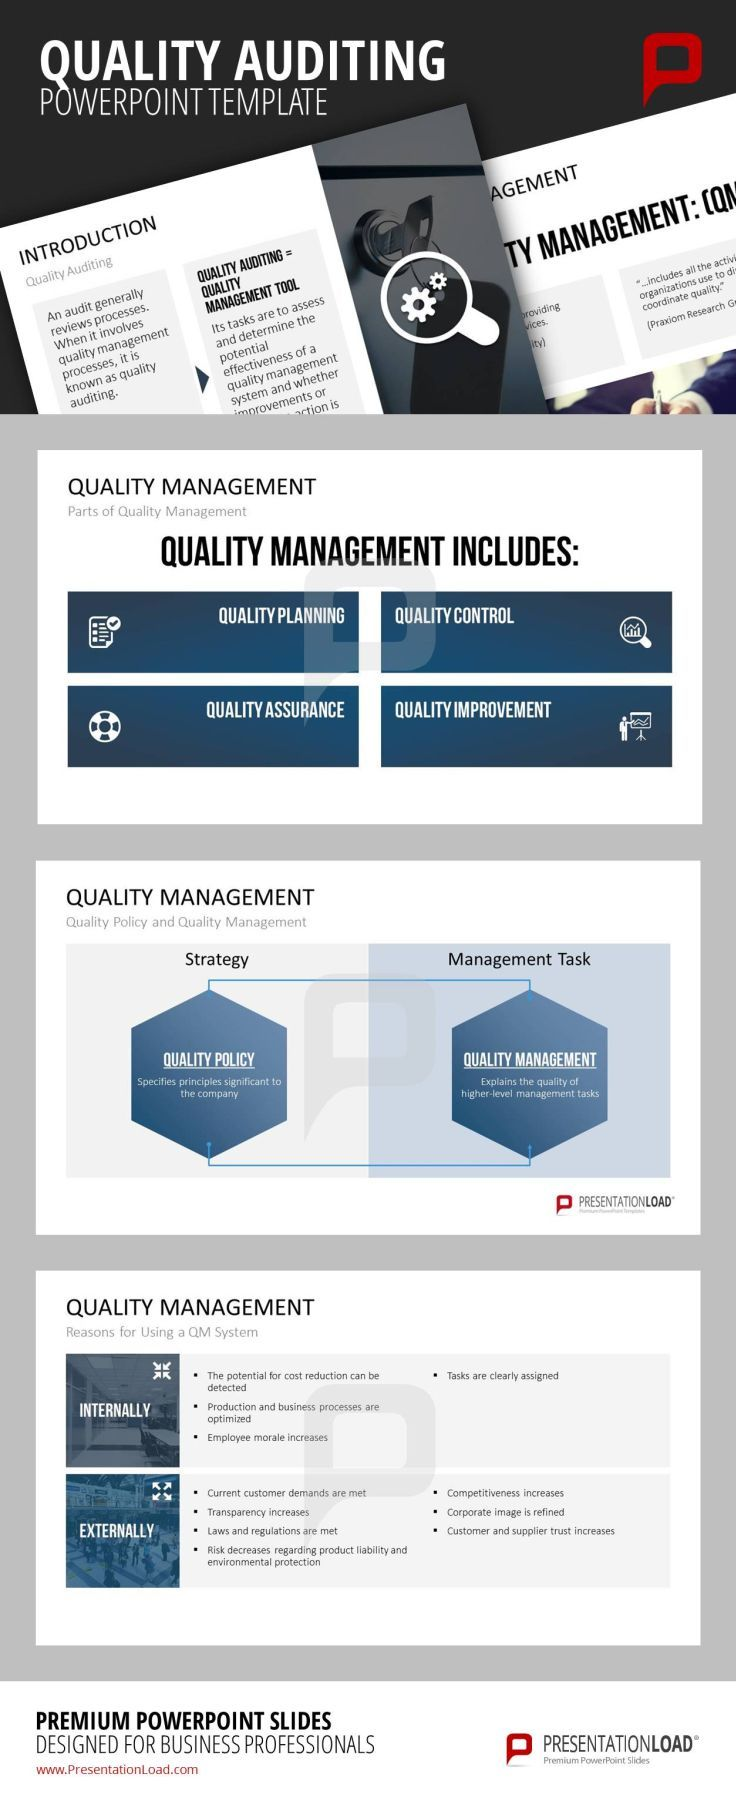 Presentation Template For Displaying The Quality Auditing